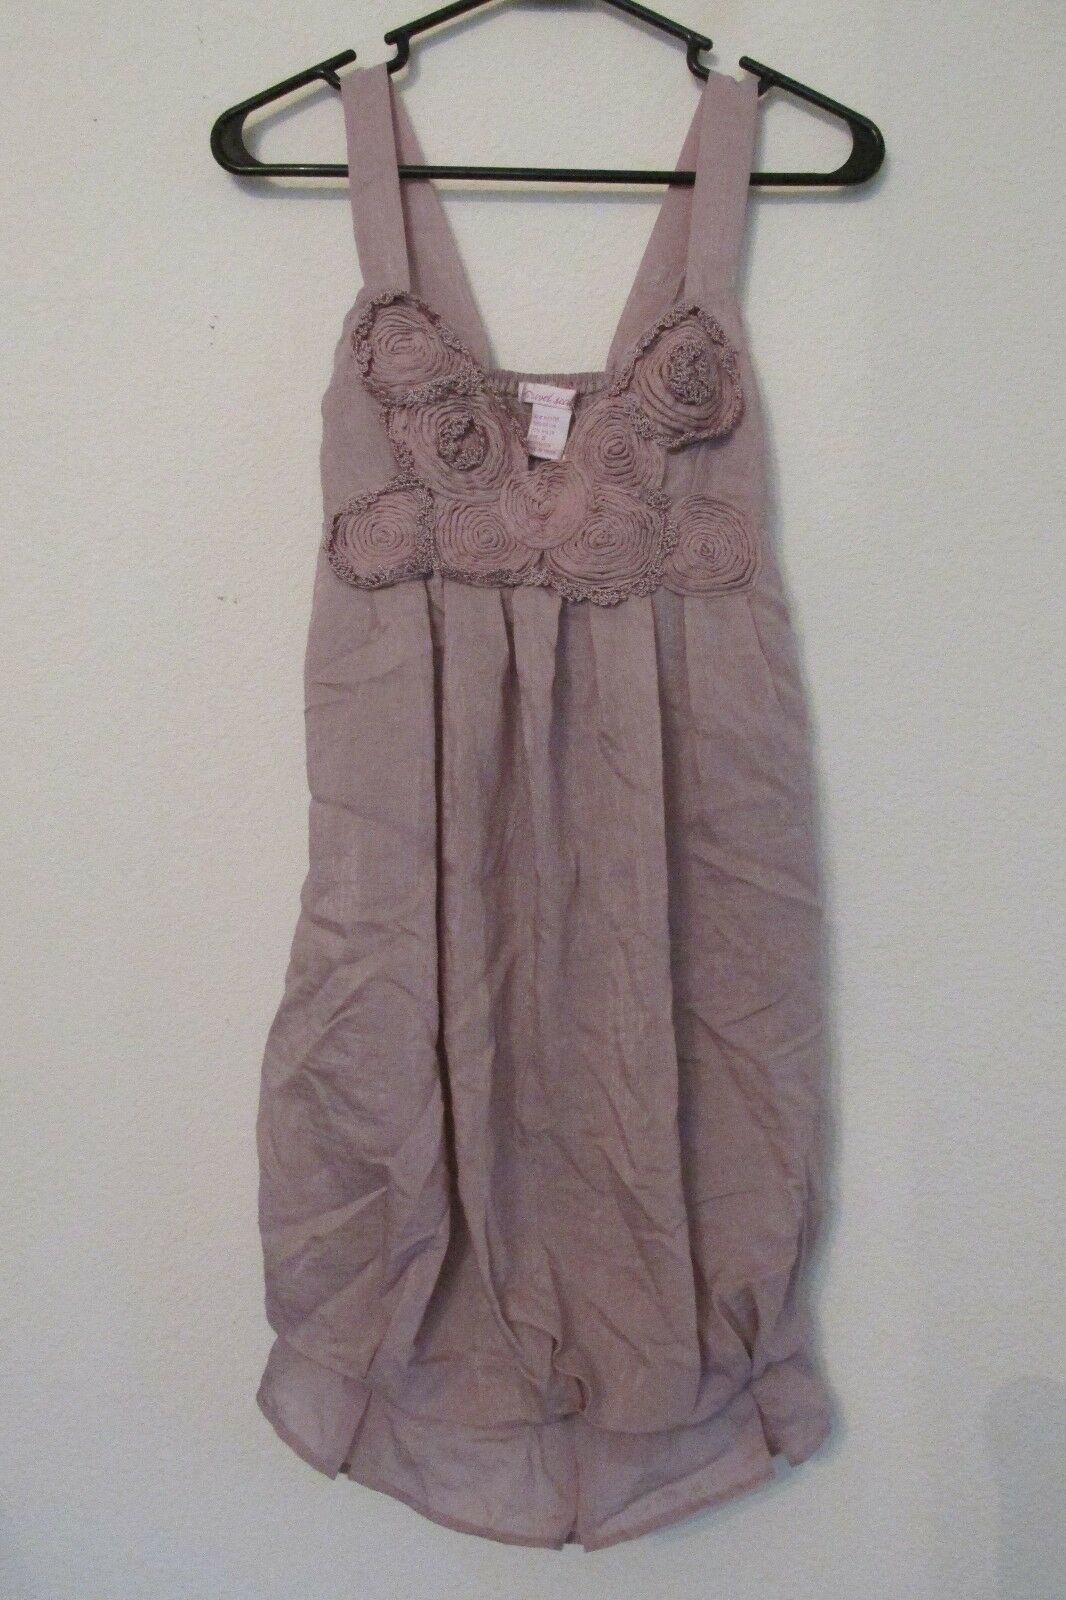 NEW WITH TAGS WOMEN'S WET SEAL METALLIC pink PINK TANK TOP DRESS SIZE SMALL